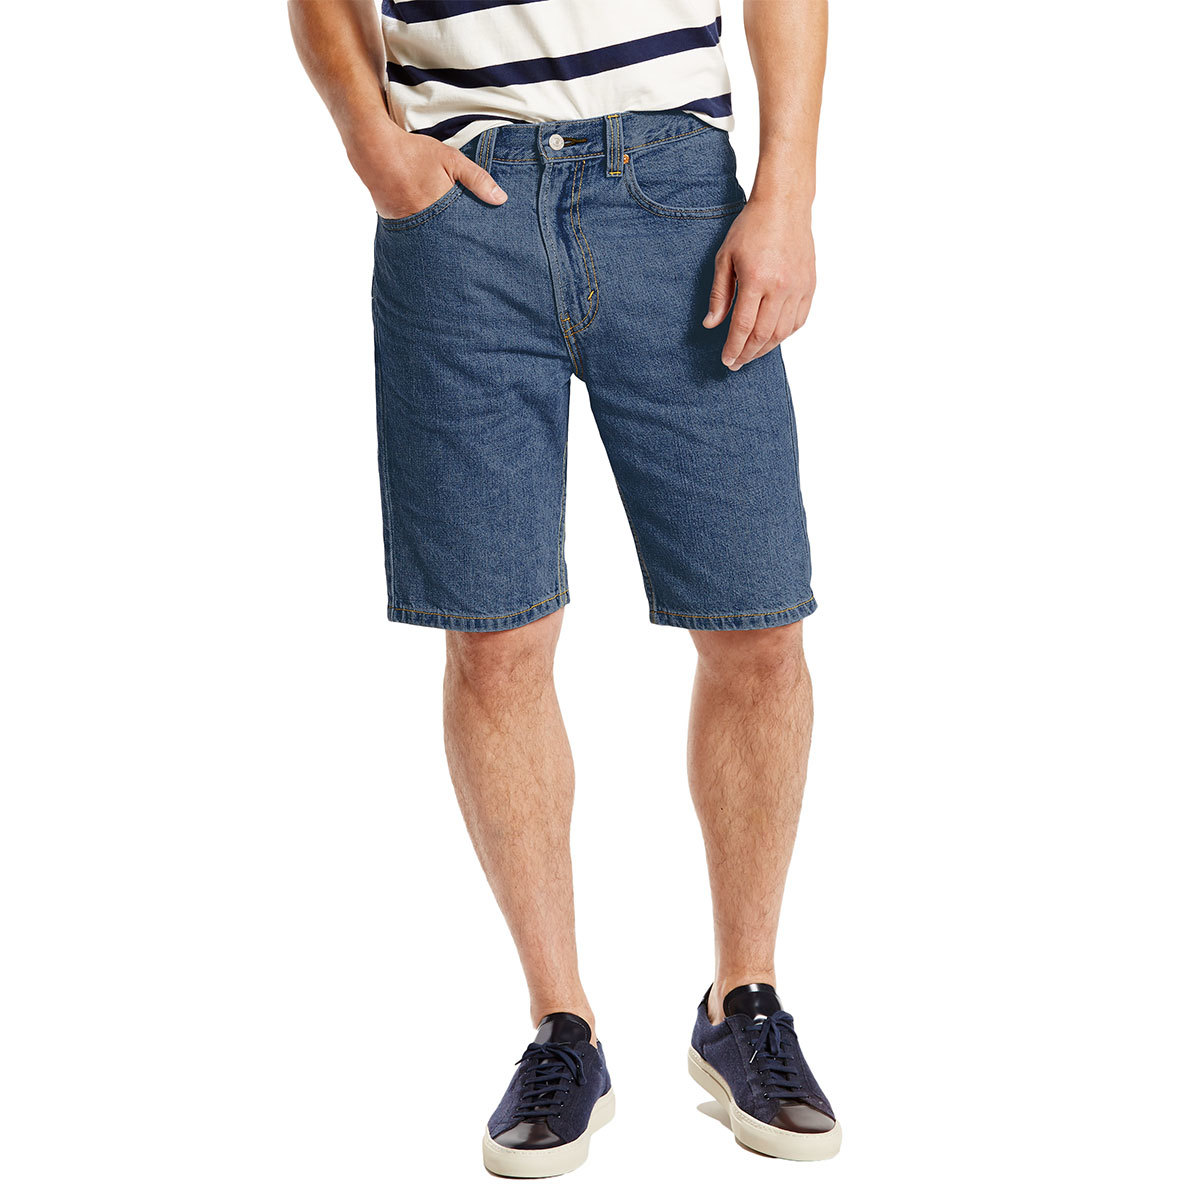 Levi's Young Men's 505 Regular Fit Denim Shorts - Blue, 30